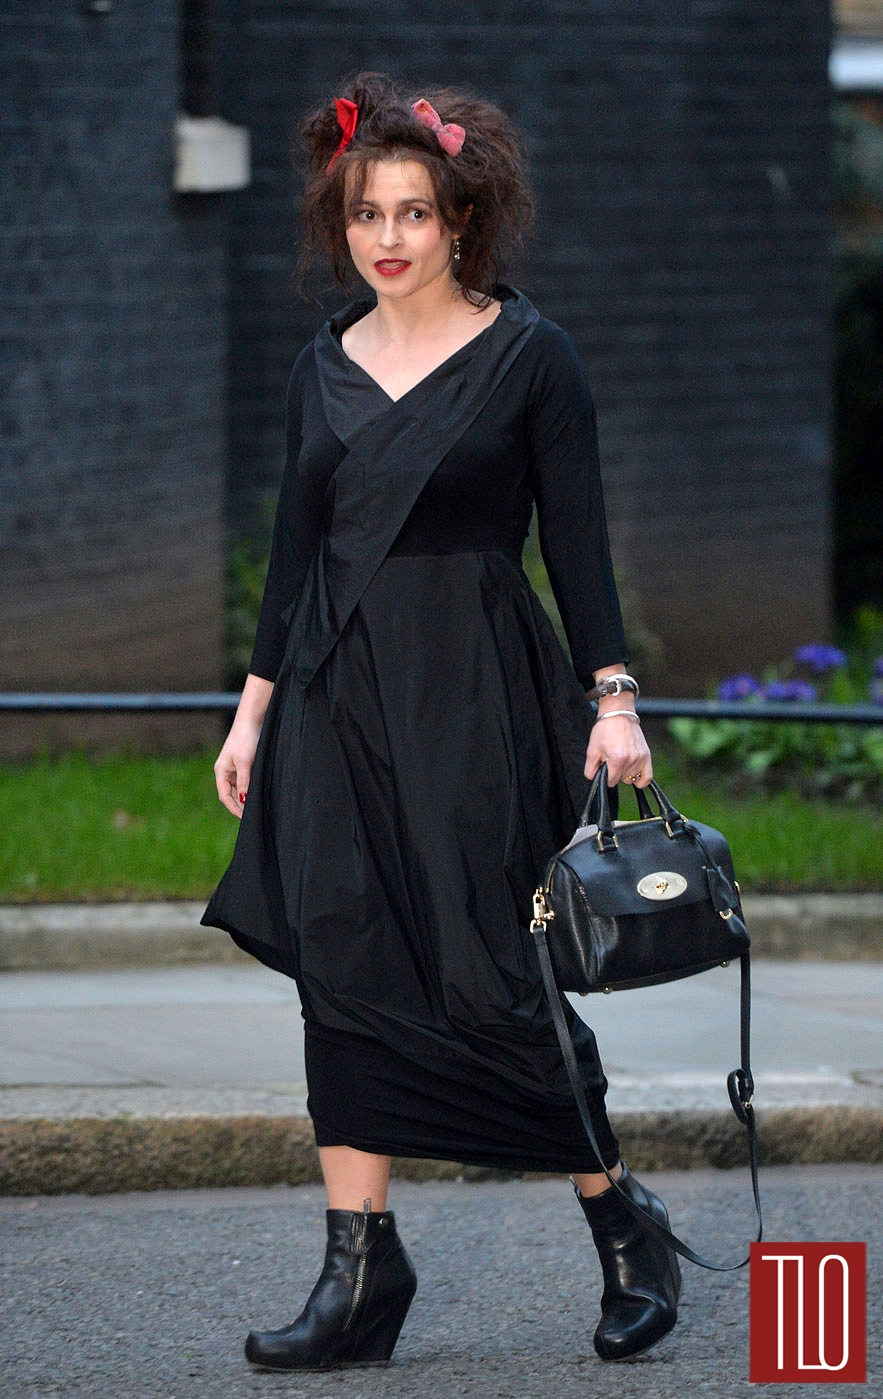 Helena-Bonham-Carter-International-Women-Day-Tom-Lorenzo-Site-TLO (1)